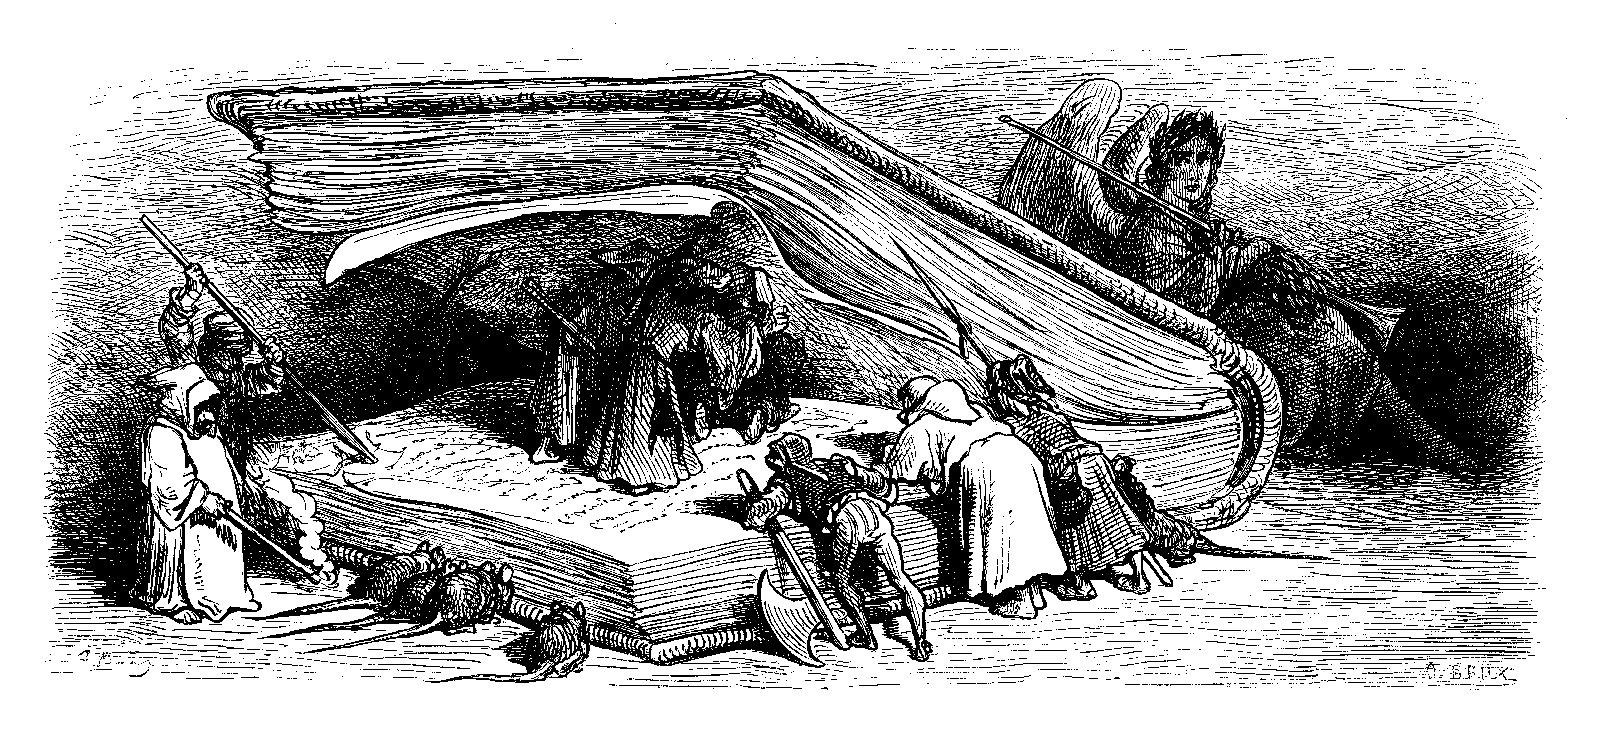 Engraving by Gustave Doré from François Rabelais's Gargantua and Pantagruel